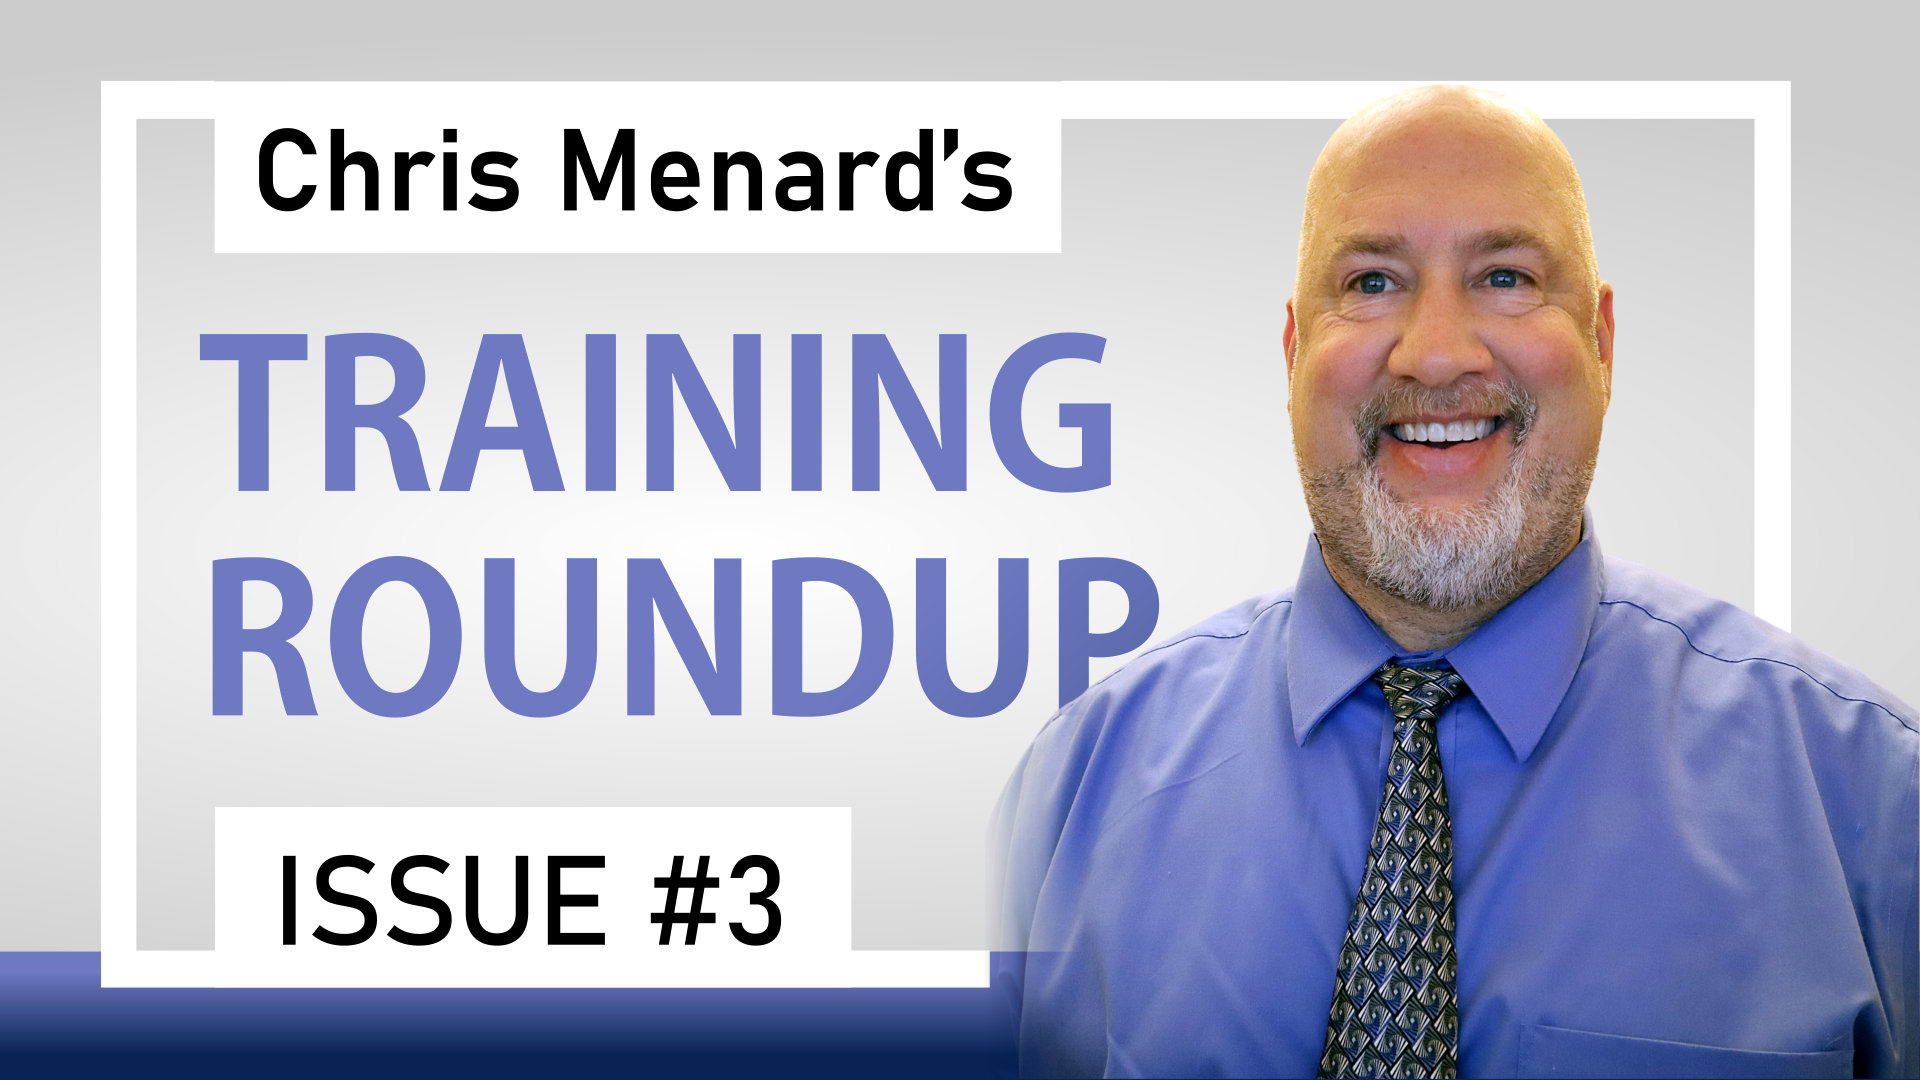 Chris Menard's Training Roundup | Issue #3